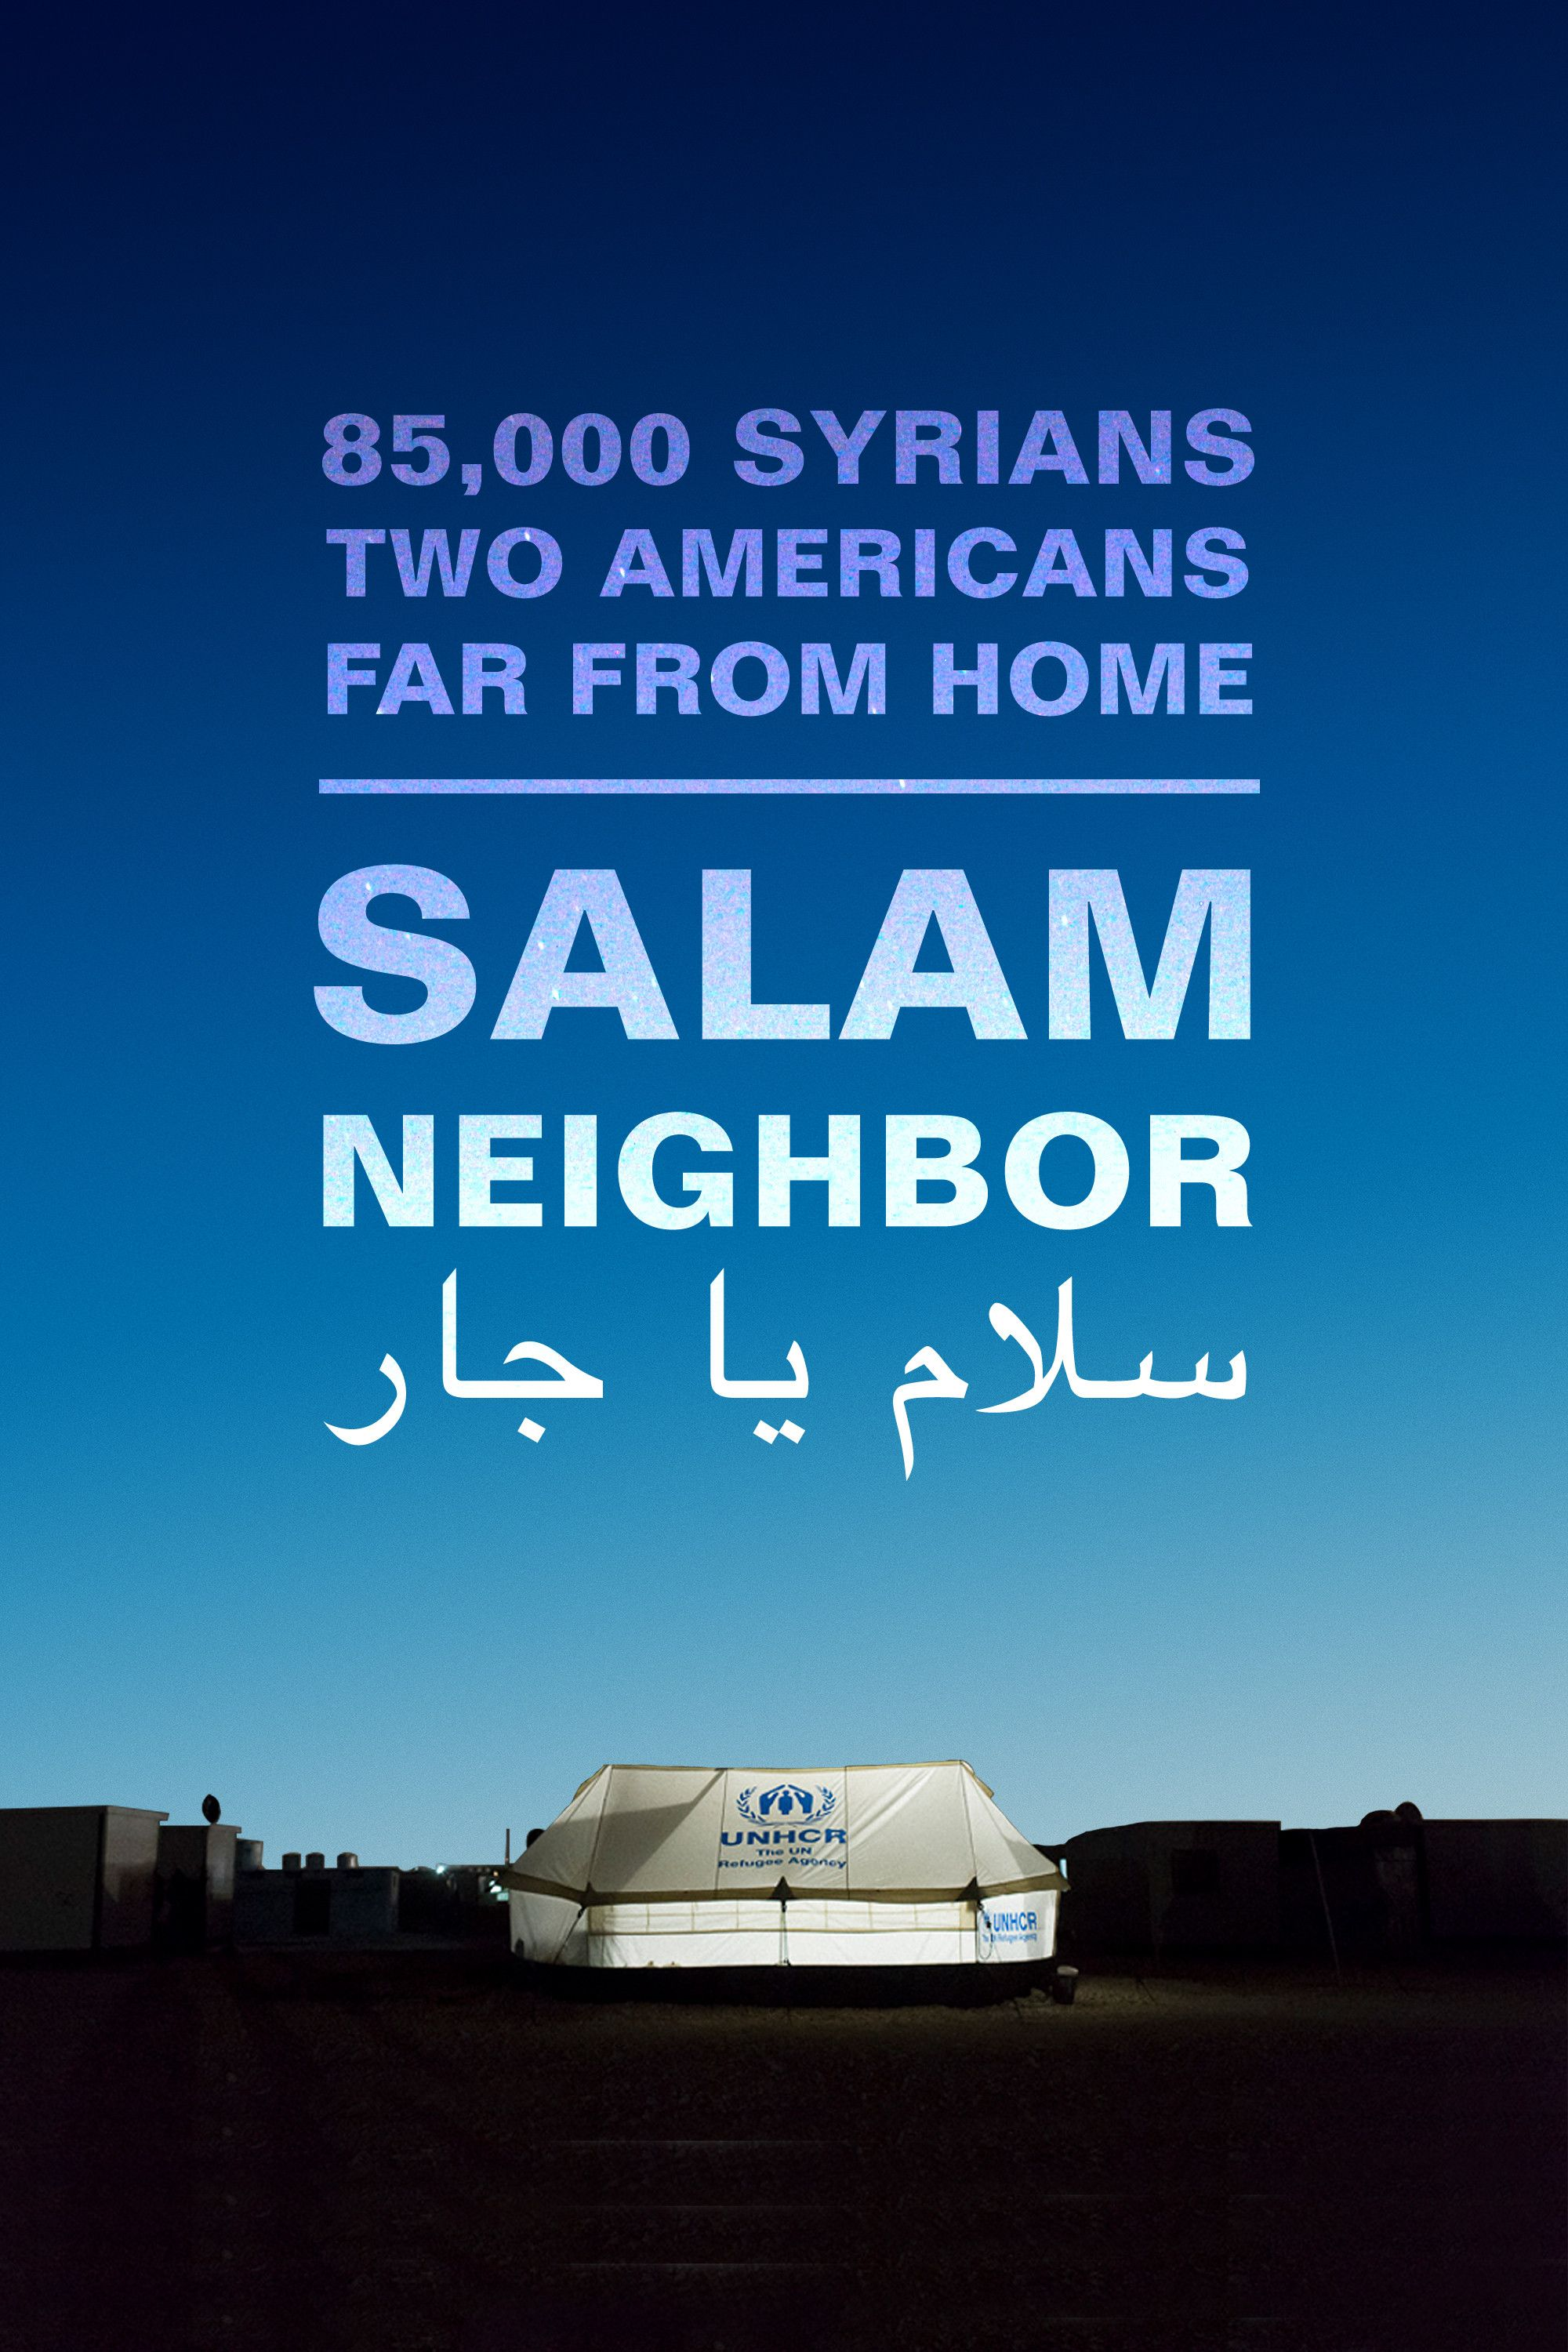 Salam Neighbor - Two filmmakers live amongst thousands of Syrians in Zaatari refugee camp and film their experience in this award-winning documentary.